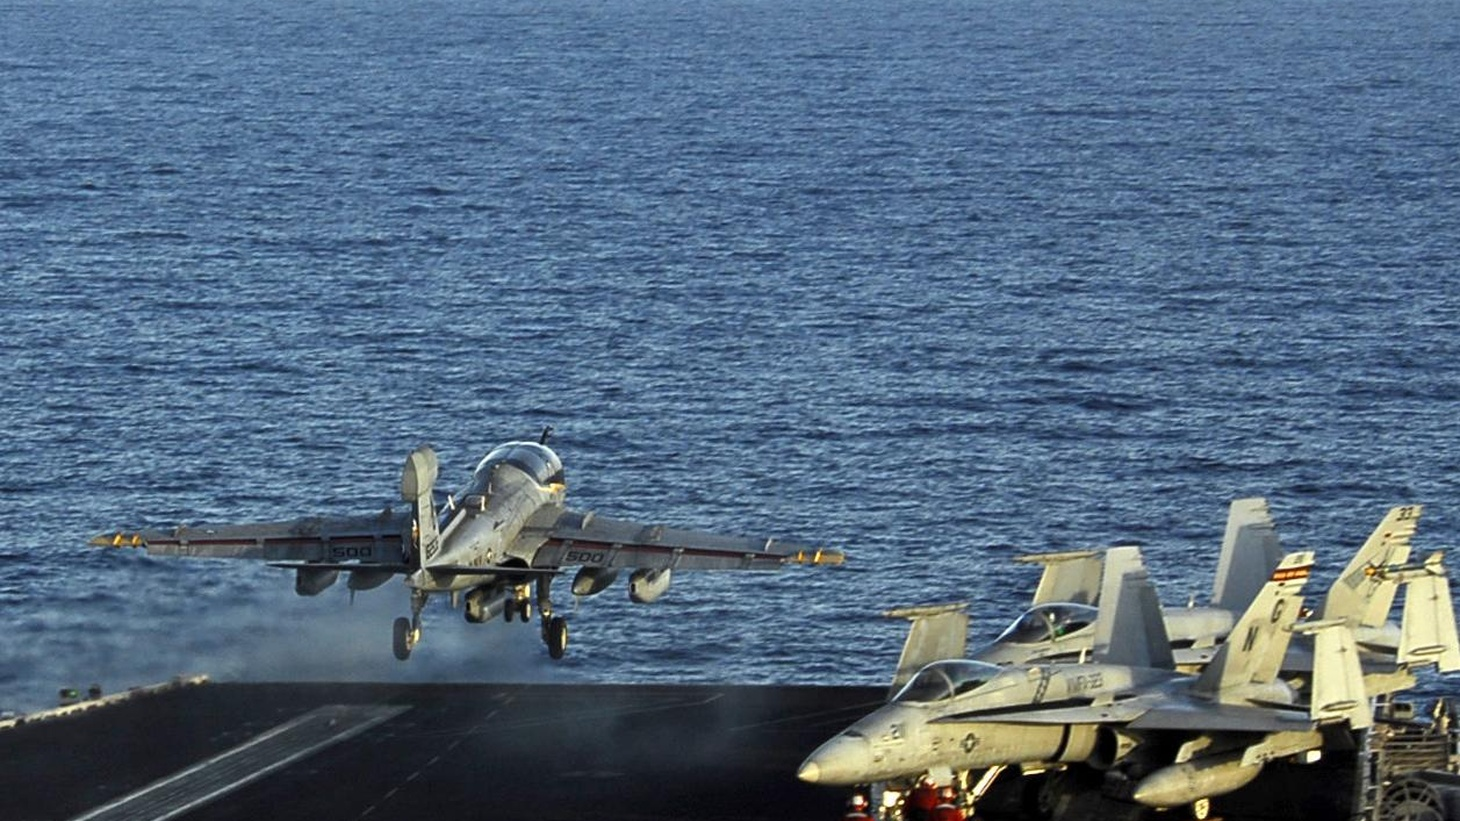 Only a few dozen people aboard the USS John C. Stennis actually fly F-18s and F-14's. It takes the rest of the crew - over 5,000 people - to keep them in the air.